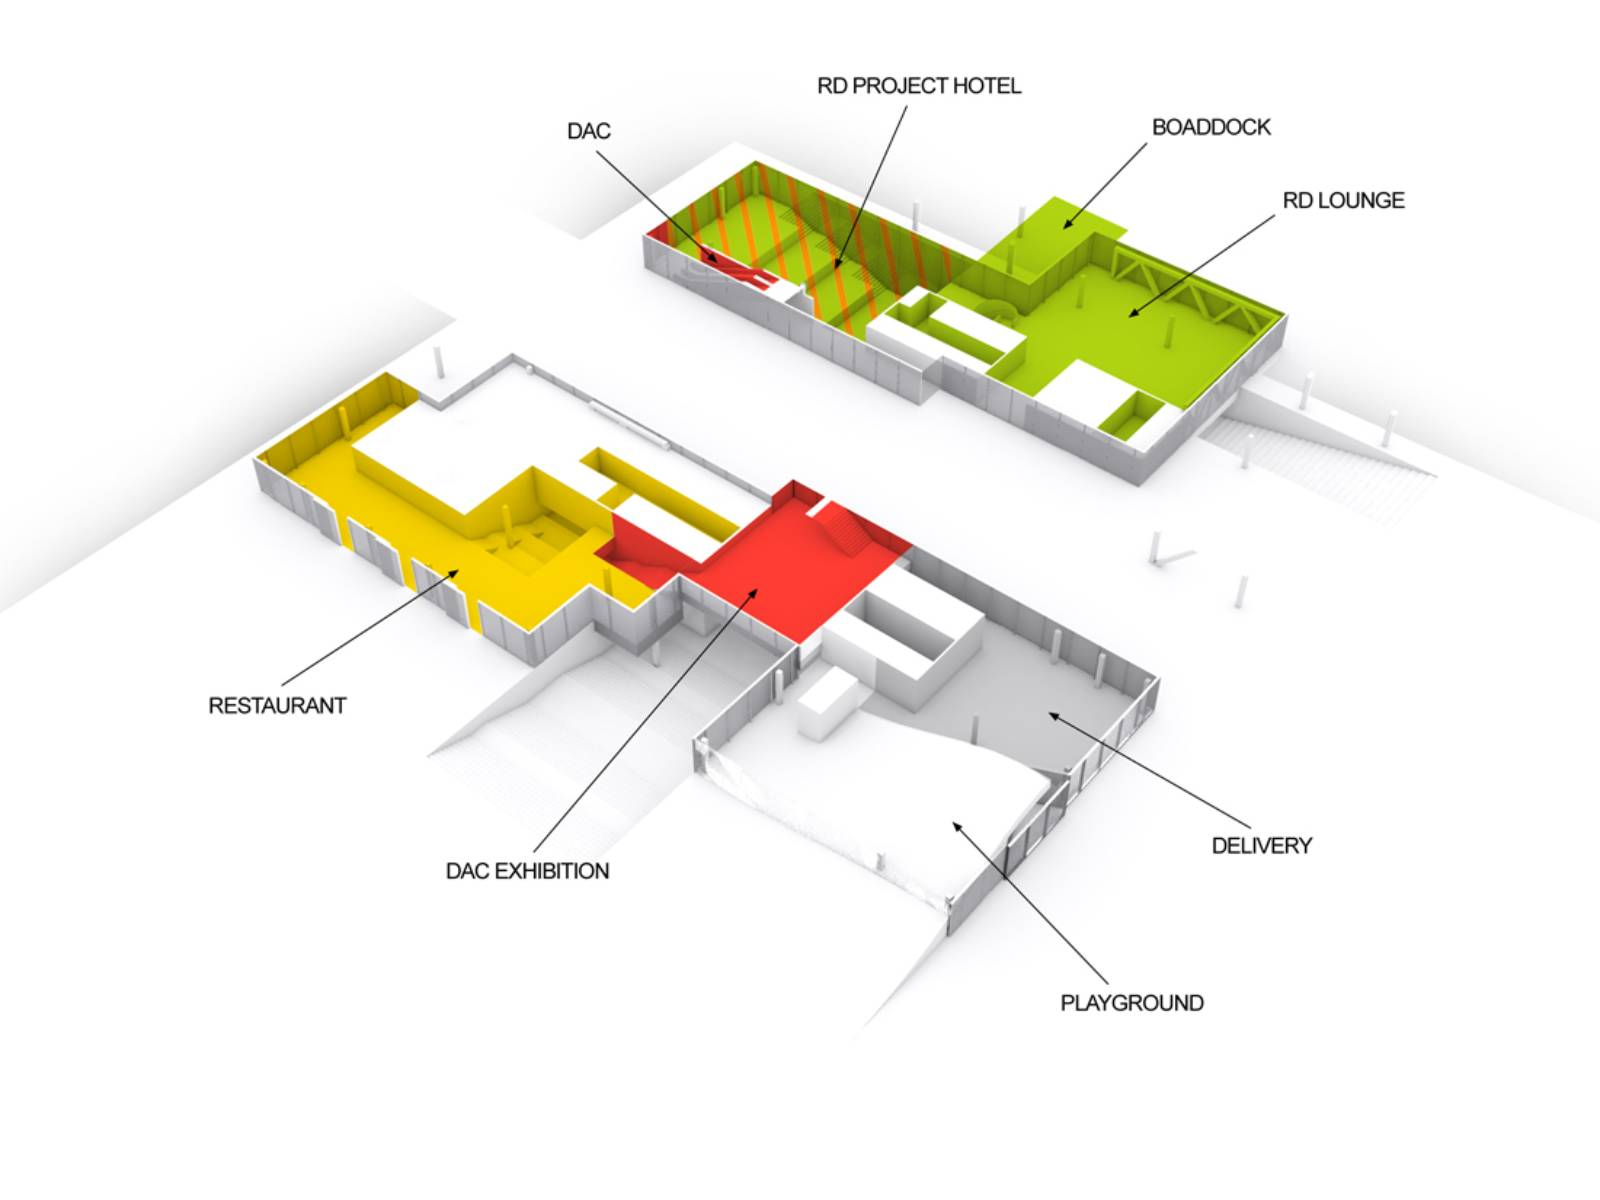 Architectural Program Diagram And 2 Viper 4115v Remote Start Wiring Construction Begins Of Bryghusprojektet By Oma A As